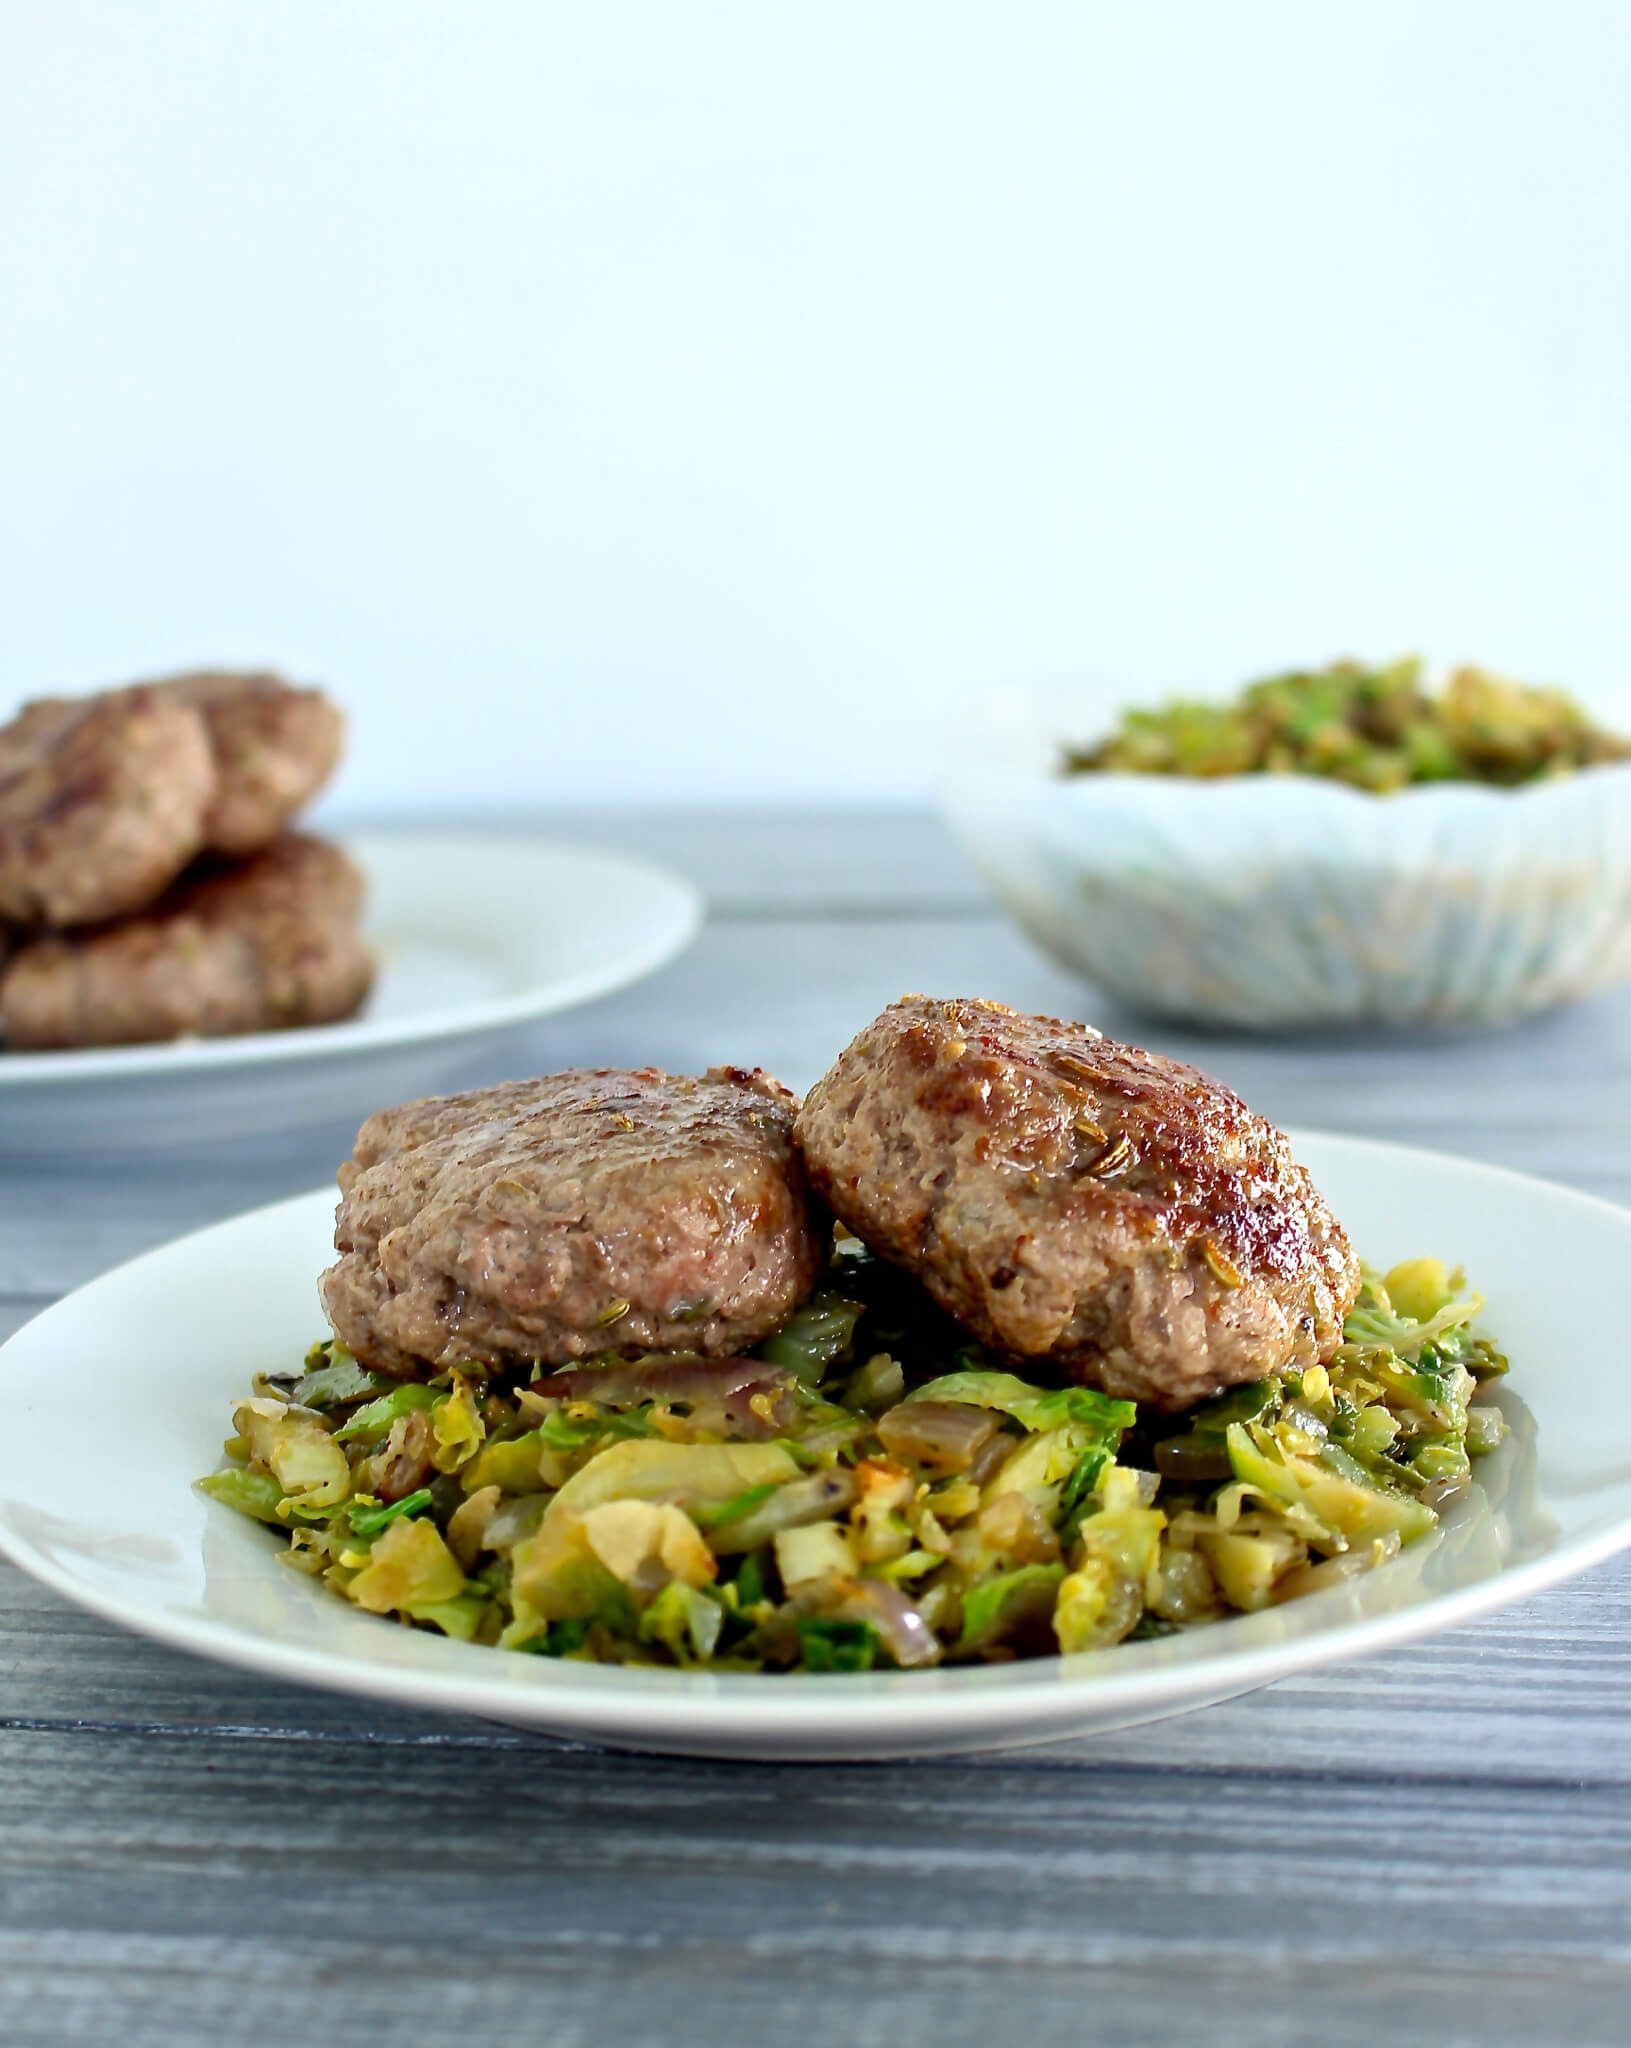 Healthy Breakfast Meats  Healthy Breakfast Sausage Recipe To Get Your Morning Protein